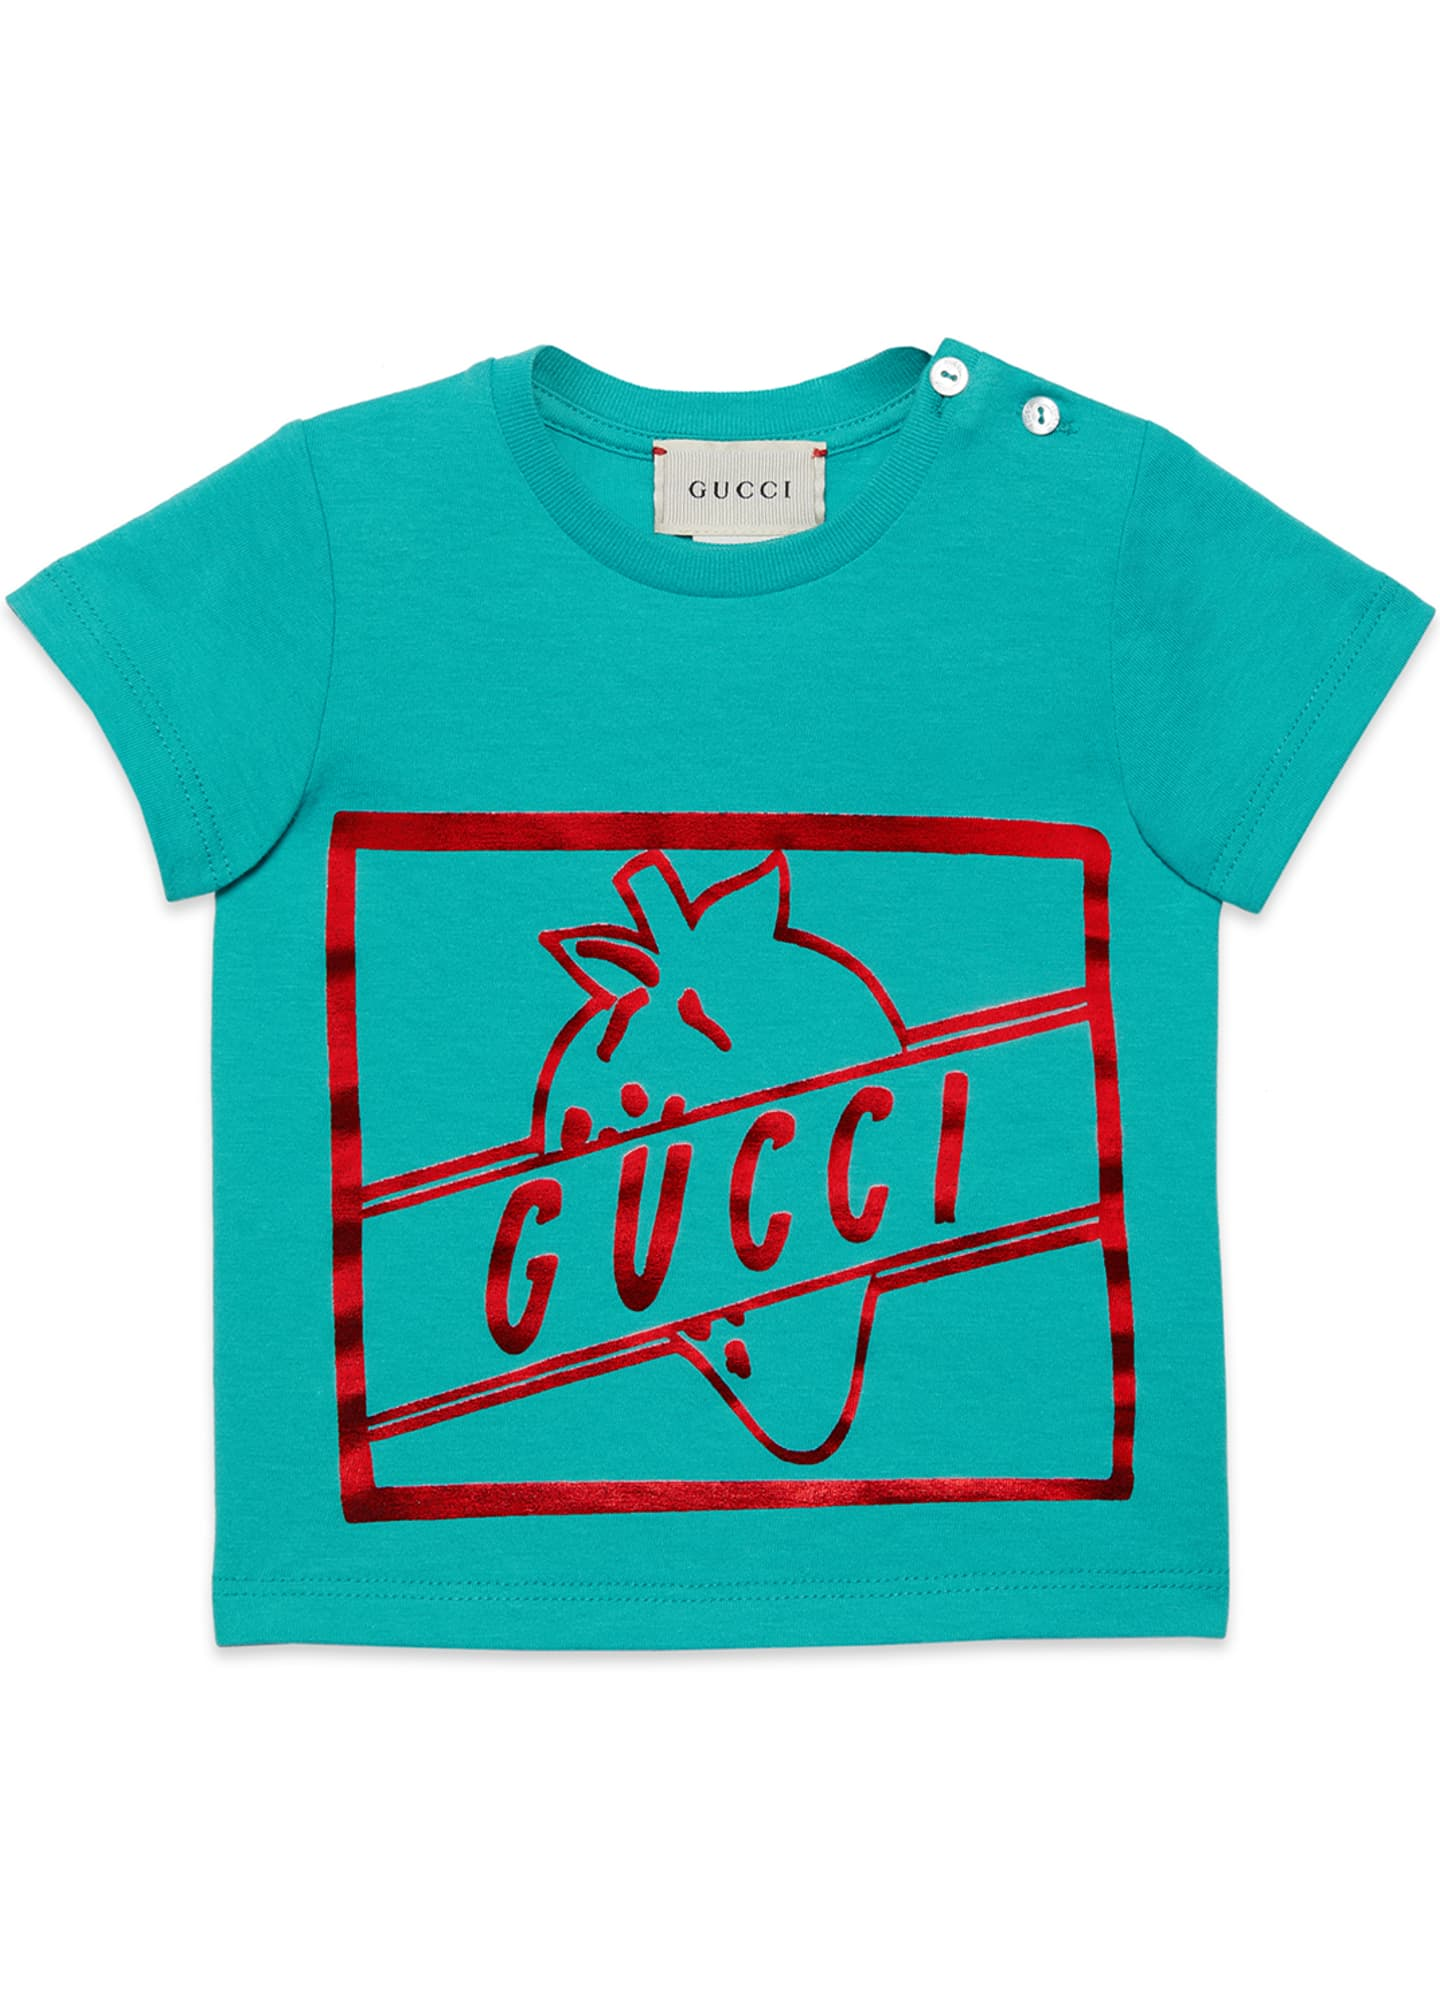 Gucci Girls' Short-Sleeve Crewneck Graphic T-Shirt, Size 6-36